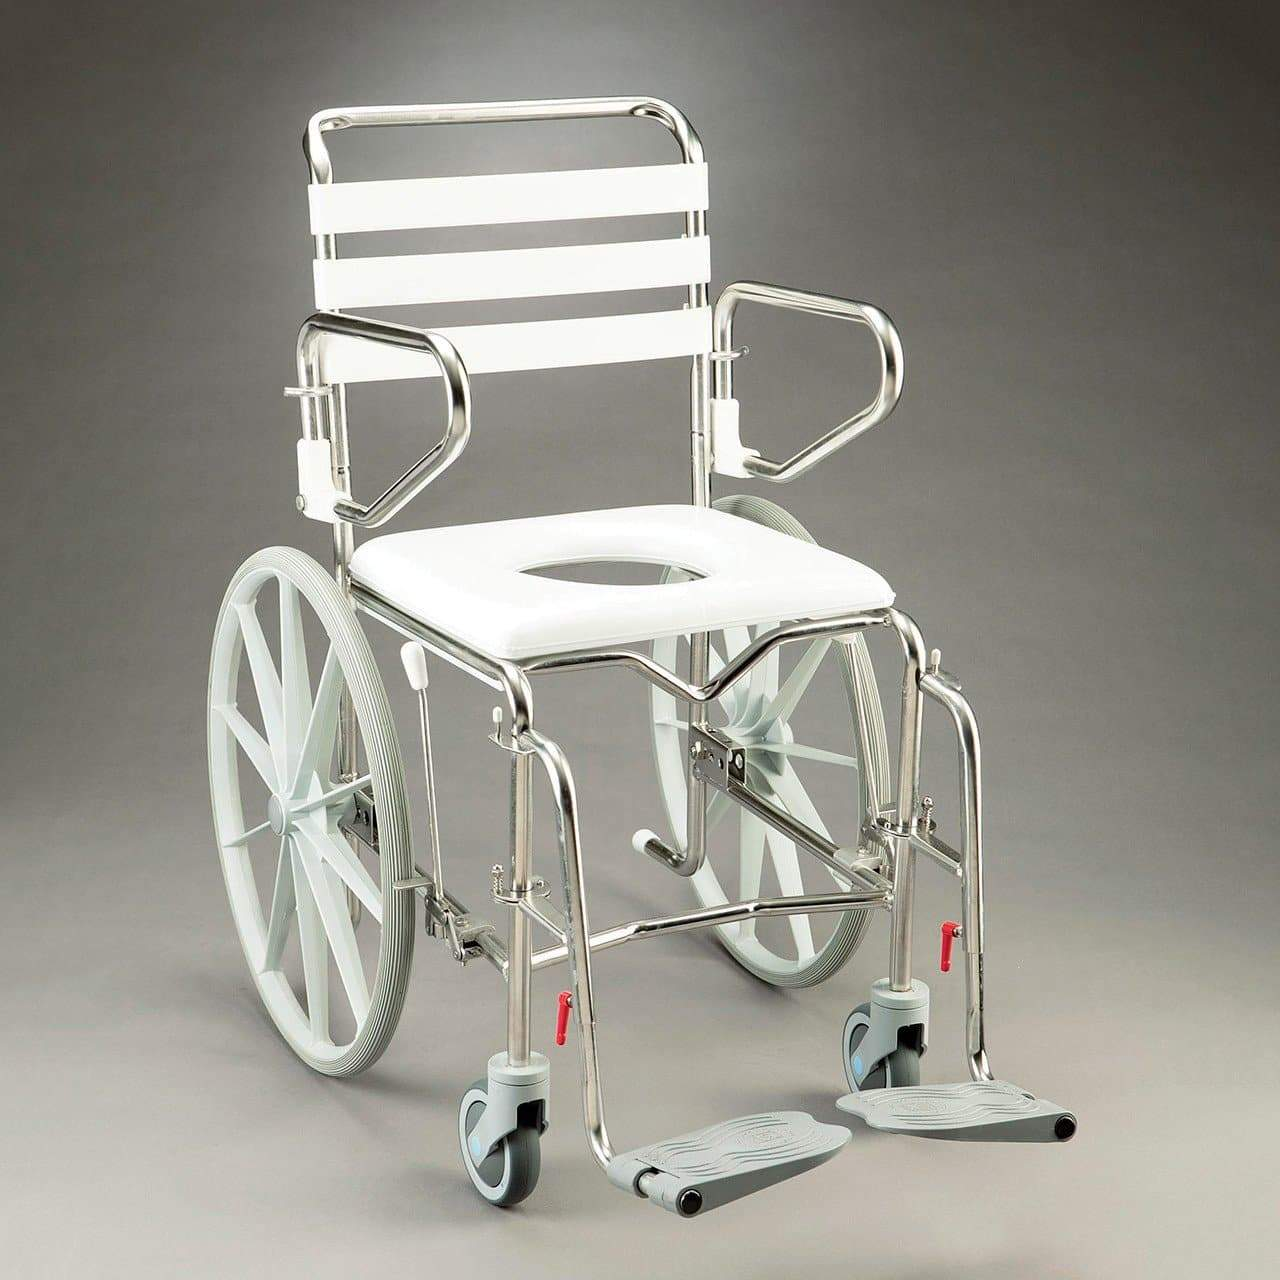 Care Quip - Mobile Shower Commode - Self Propelled by Care Quip